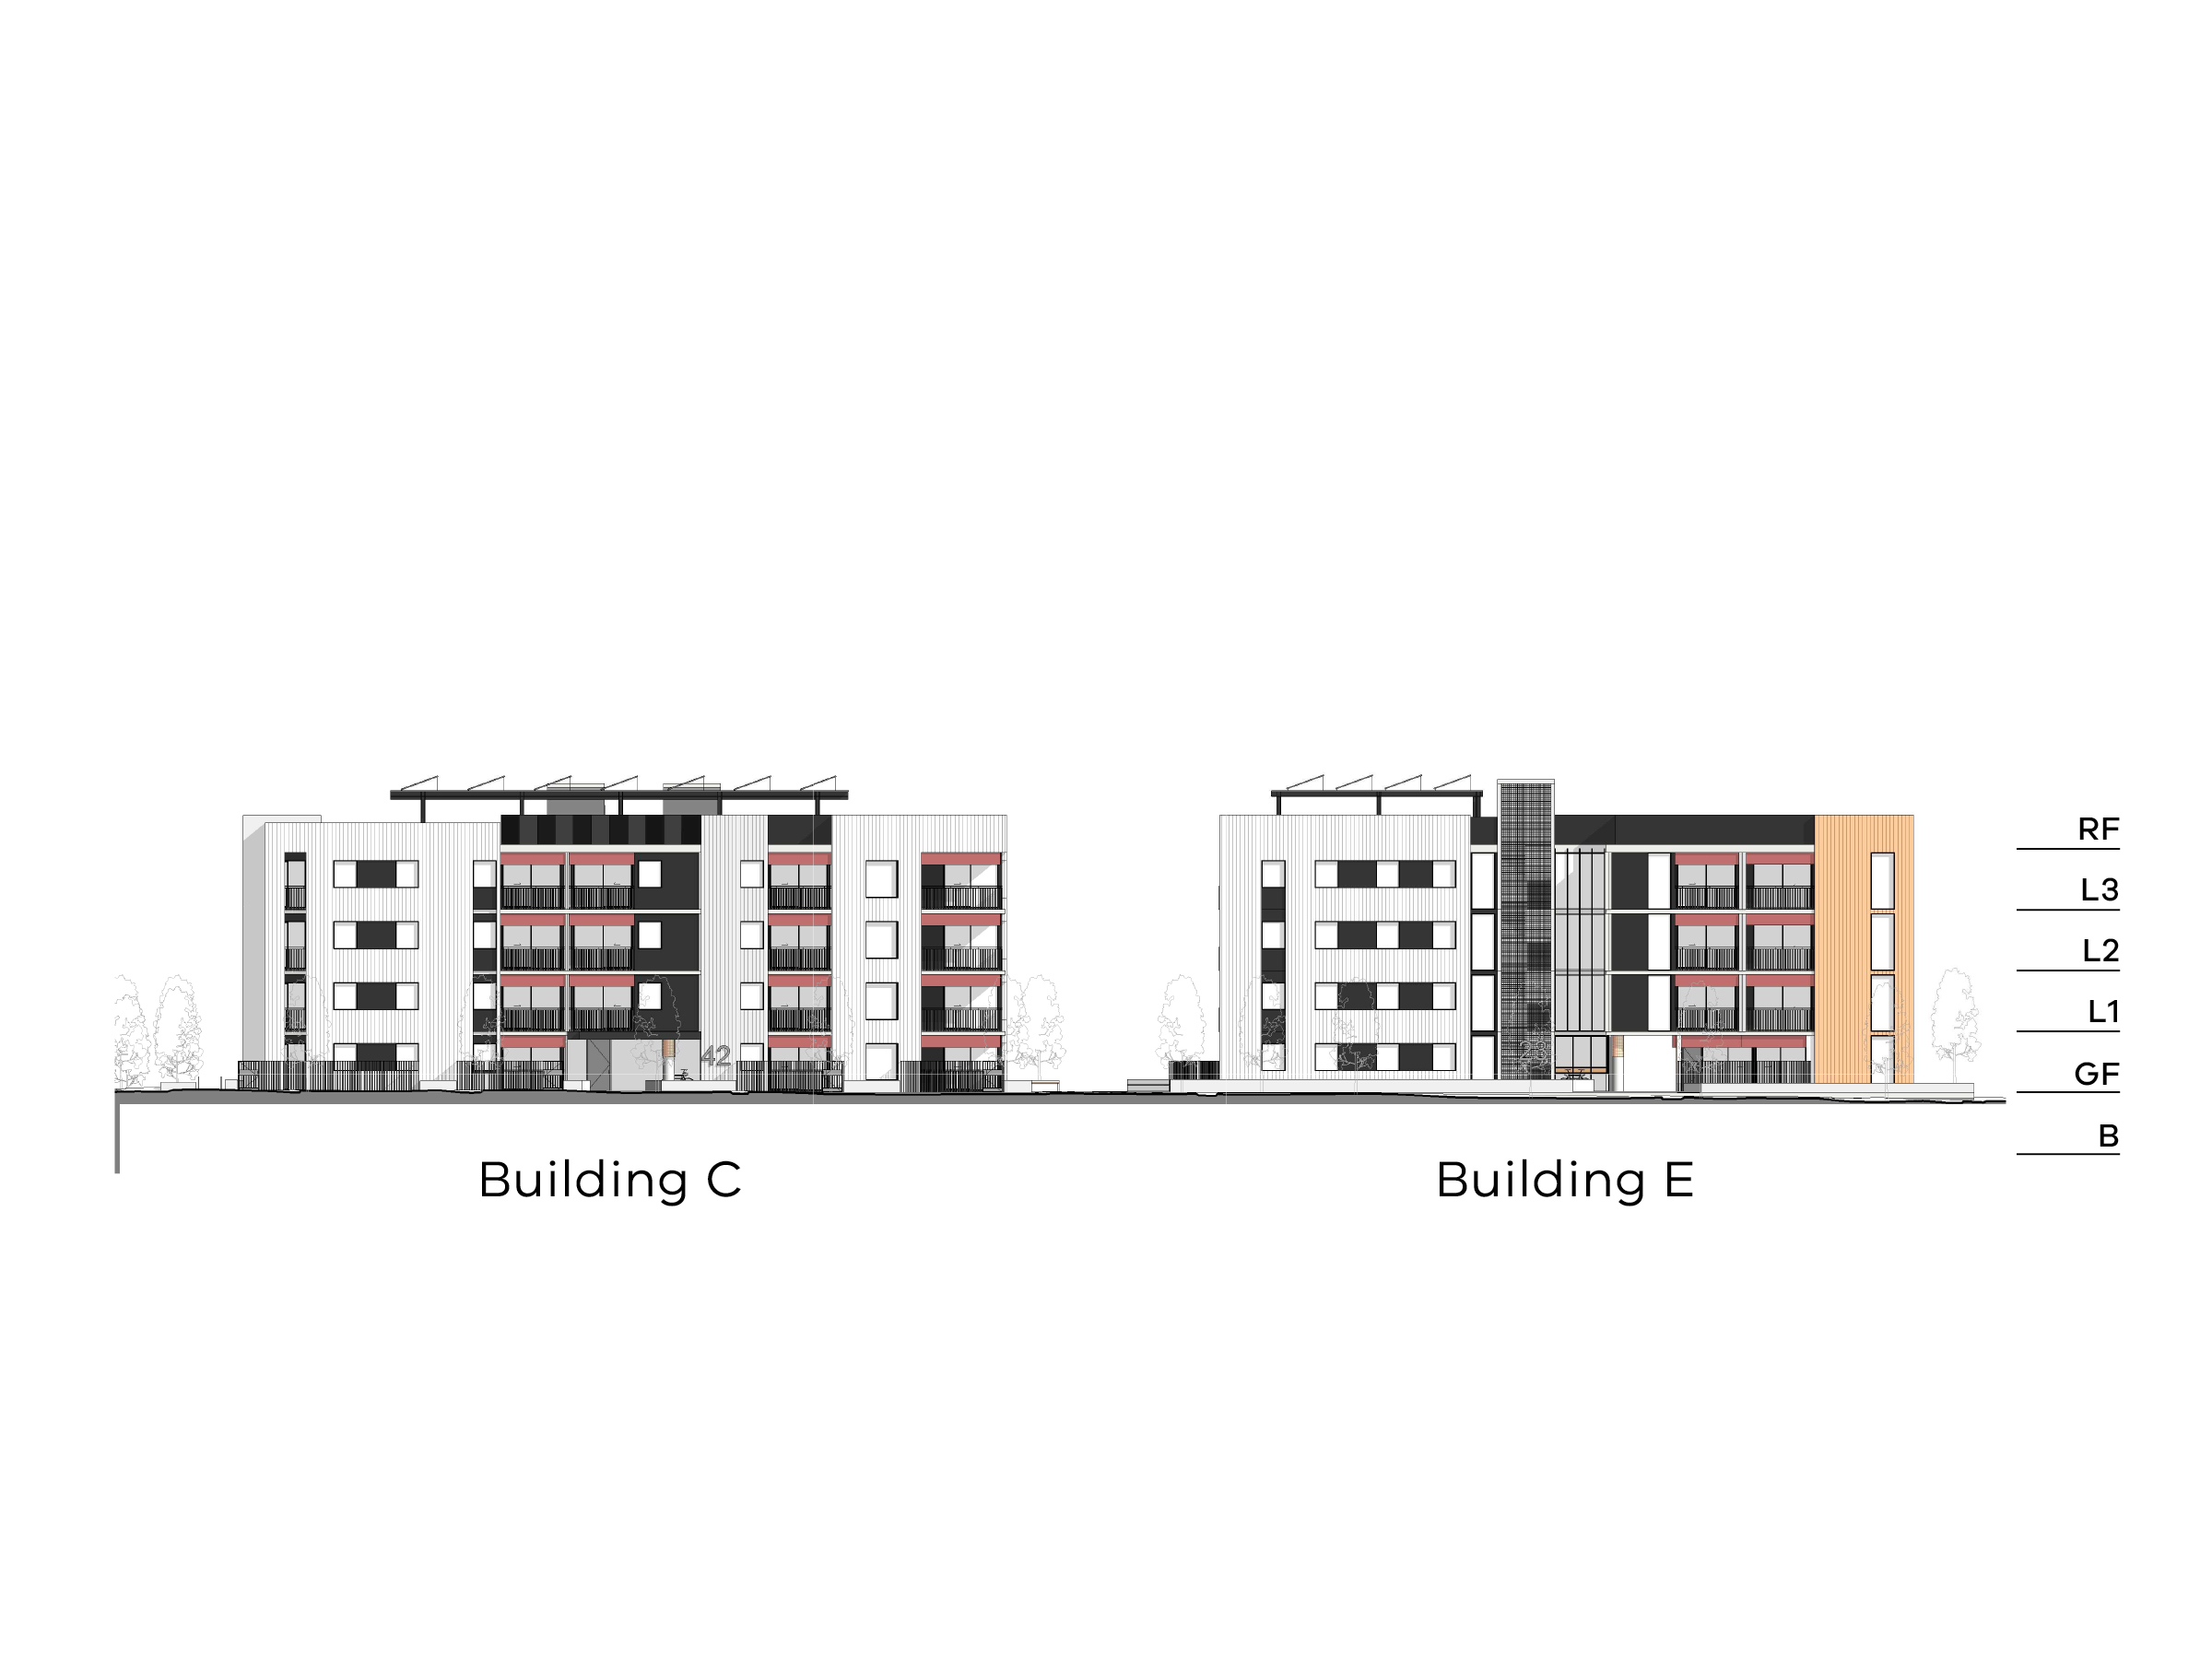 Diagram showing the heights of buildings C and E. Buildings C and E have a basement, ground floor, level 1-3 and a flat roof.